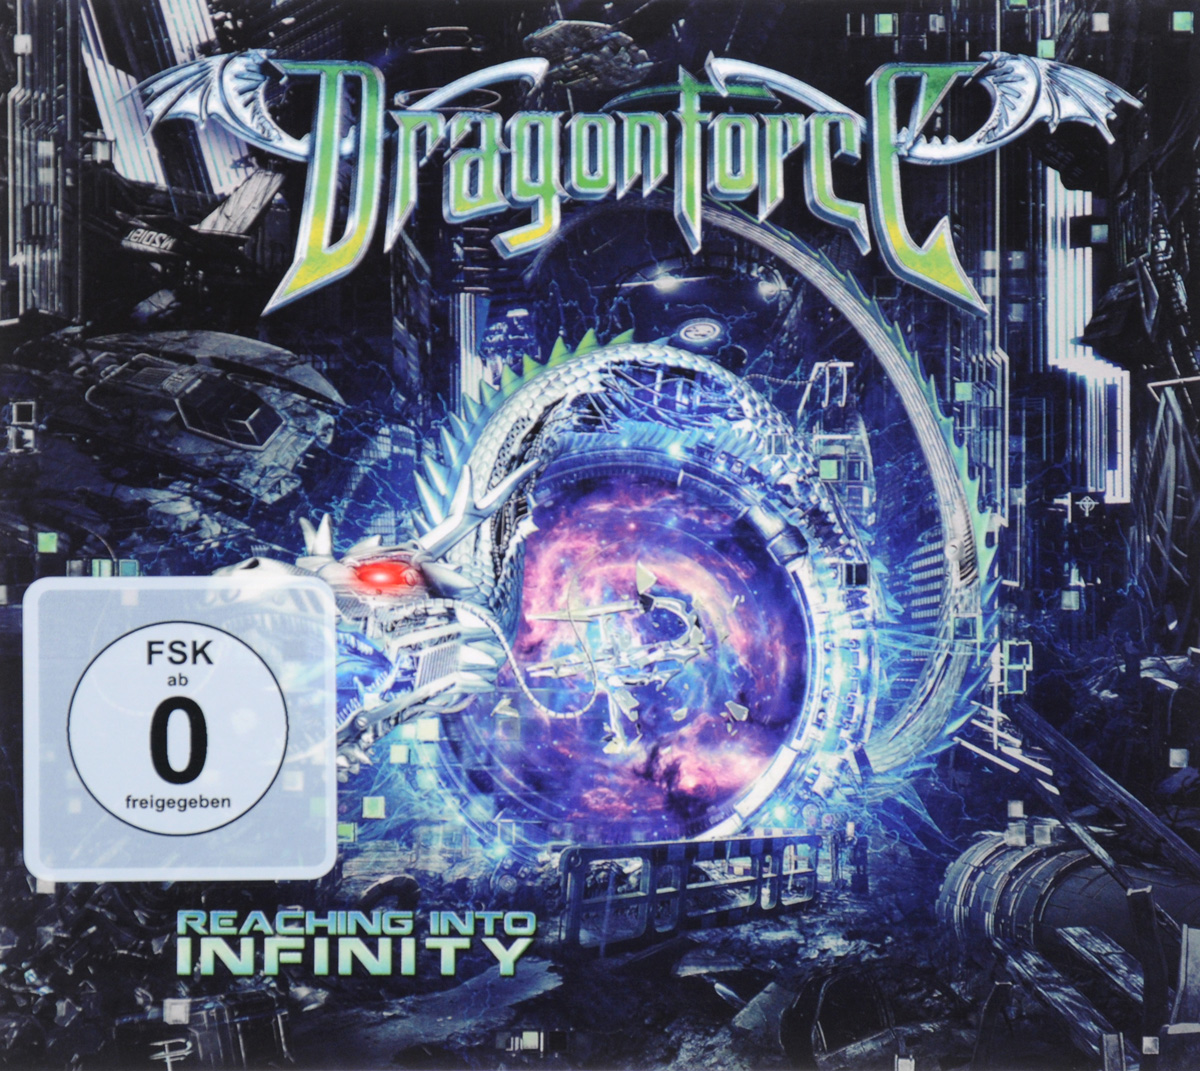 Dragonforce: Reaching Into Infinity. Limited Edition (DVD + CD) литвинова а литвинов с ideal жертвы